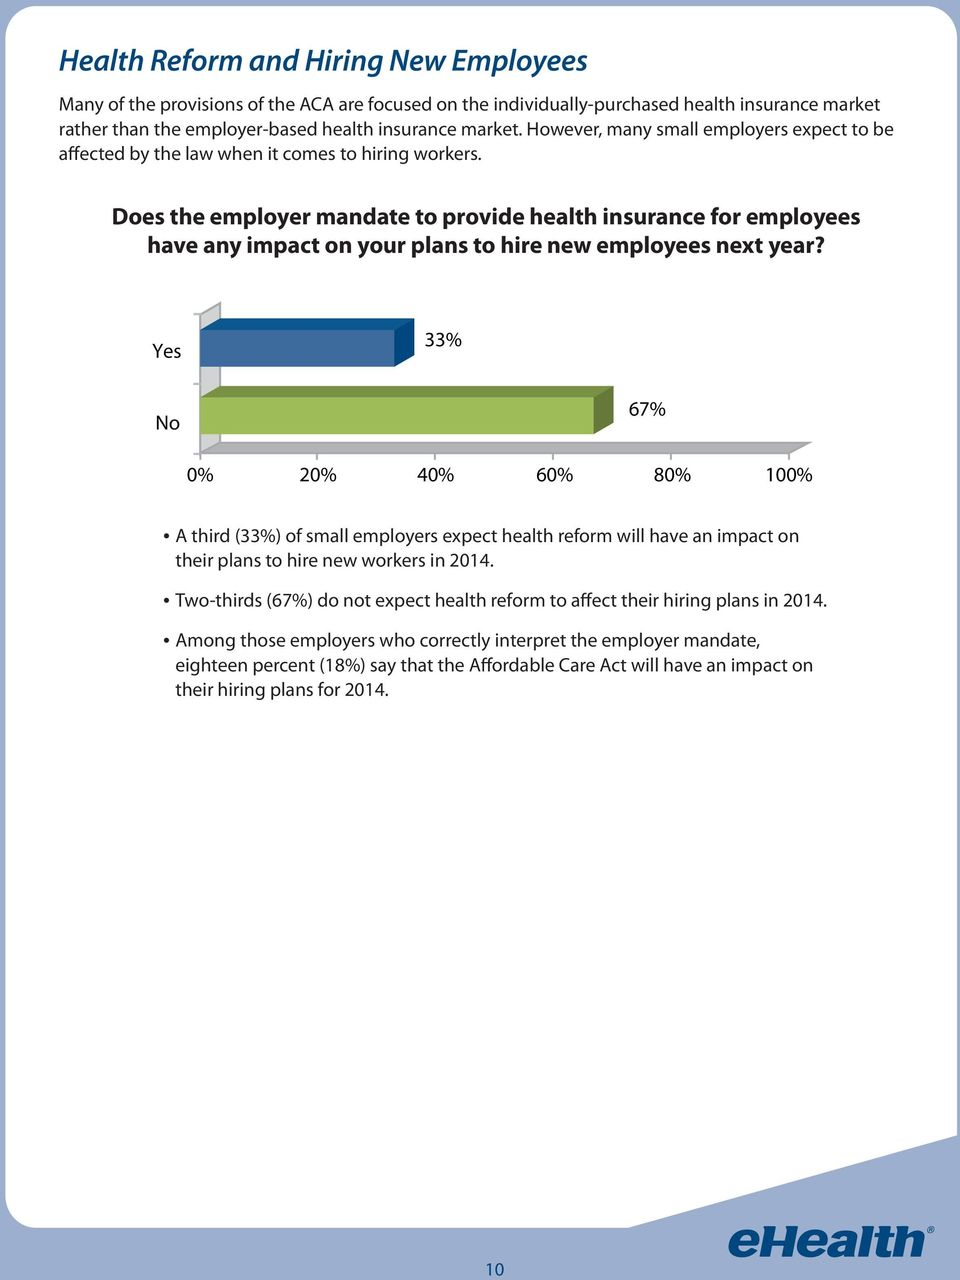 Does the employer mandate to provide health insurance for employees have any impact on your plans to hire new employees next year?